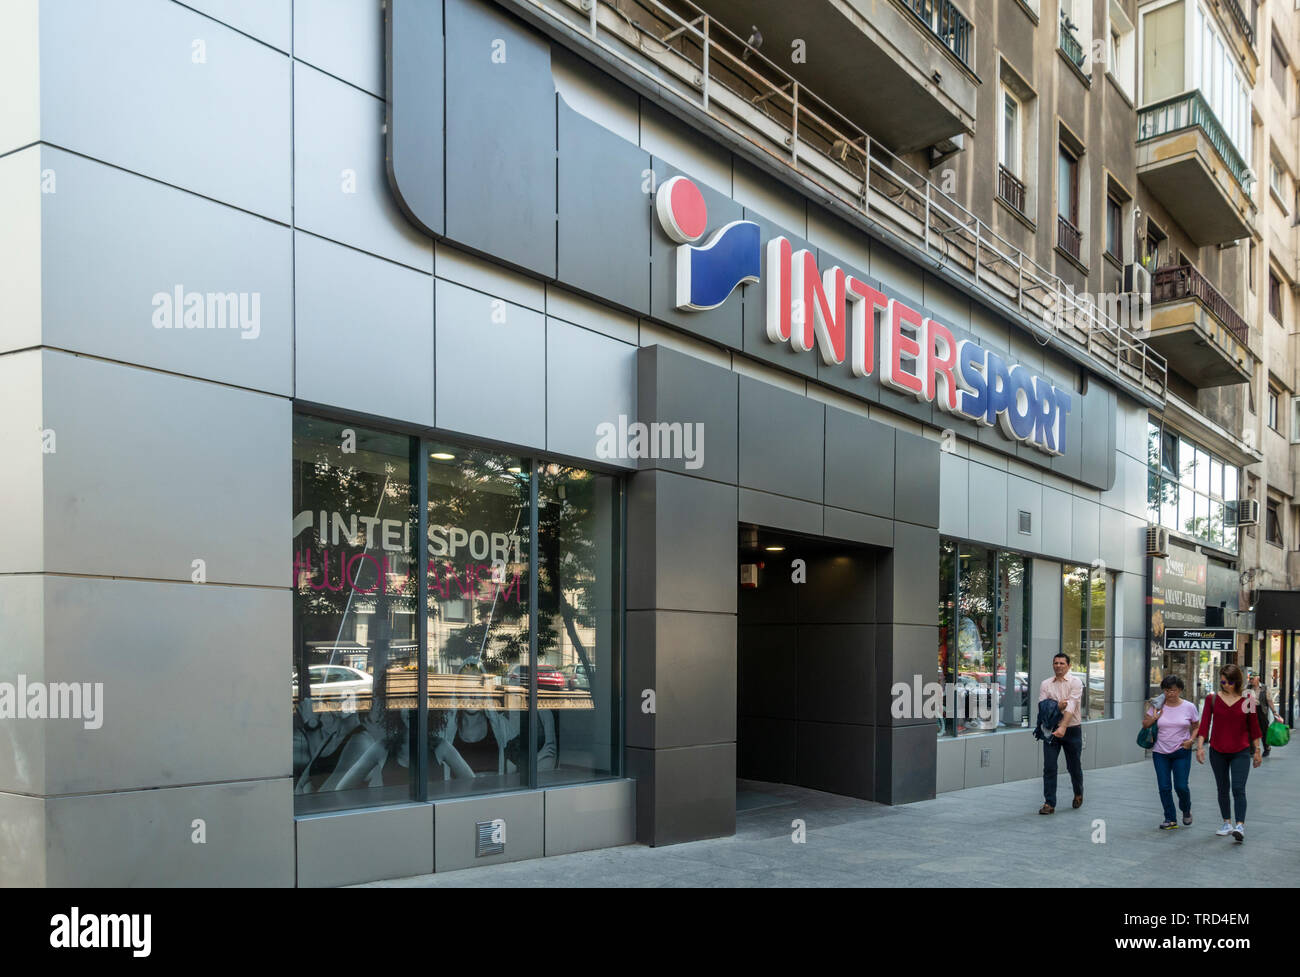 Intersport Salon Sporting Goods Stock Photos Sporting Goods Stock Images Alamy